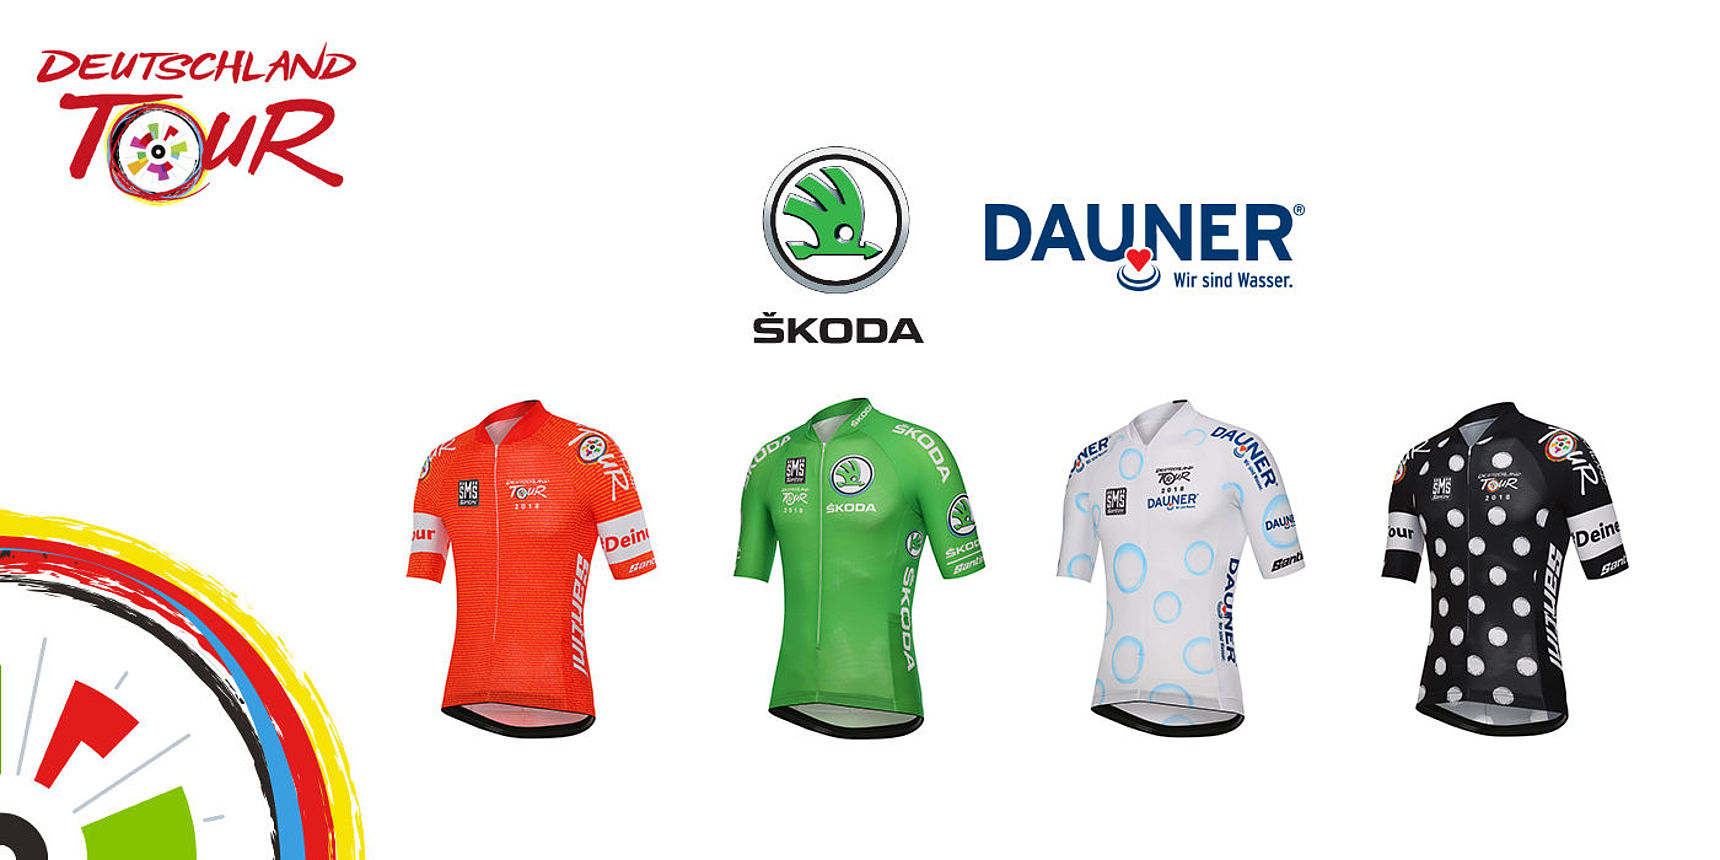 Leader Jerseys Deutschland Tour